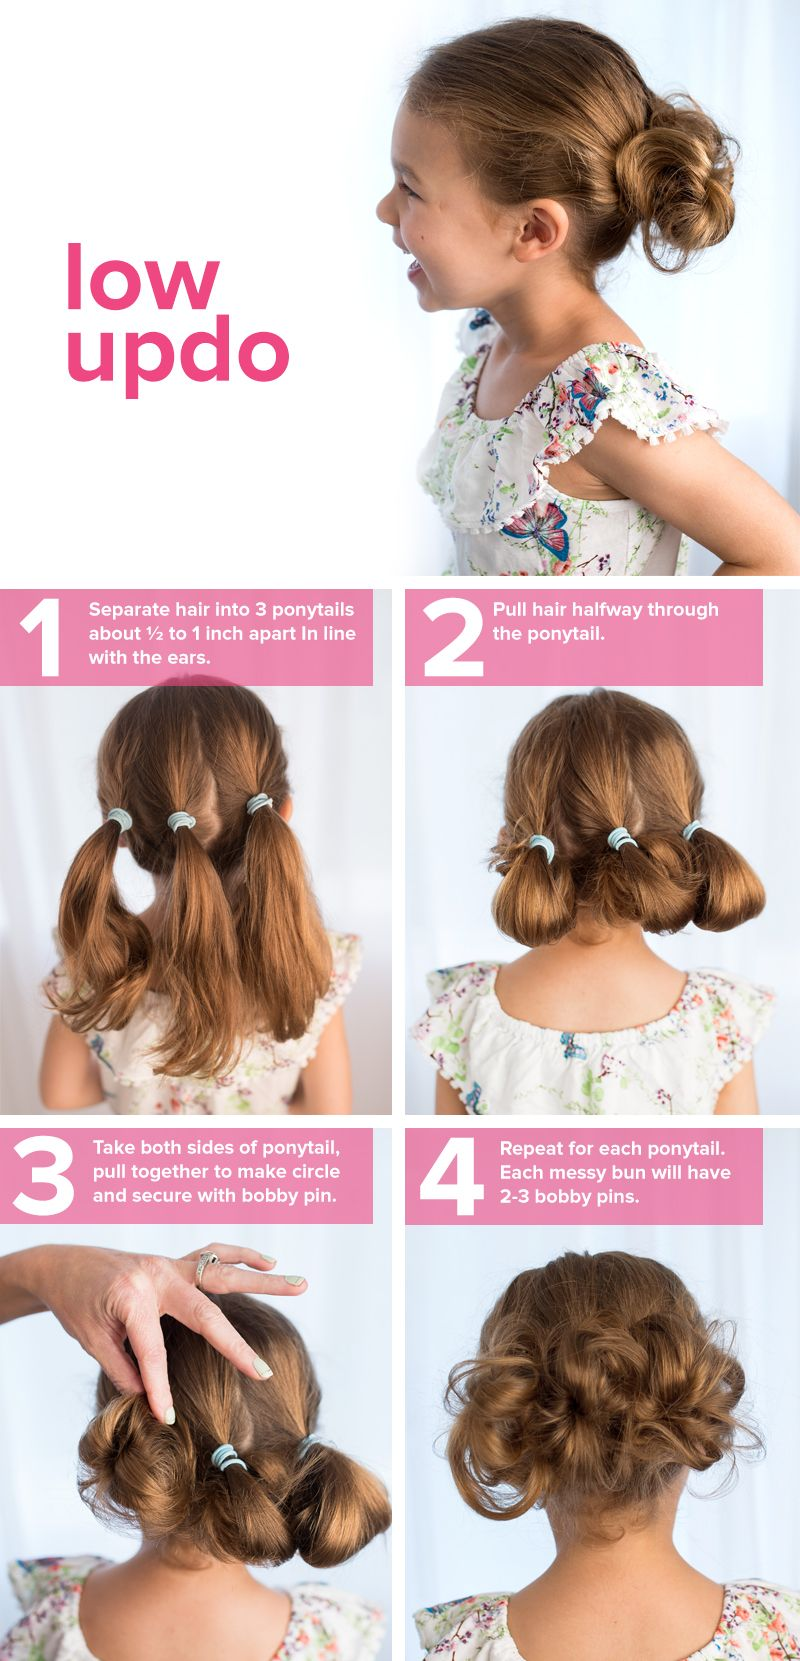 5 fast, easy, cute hairstyles for girls | BACK TO SCHOOL | Pinterest ...